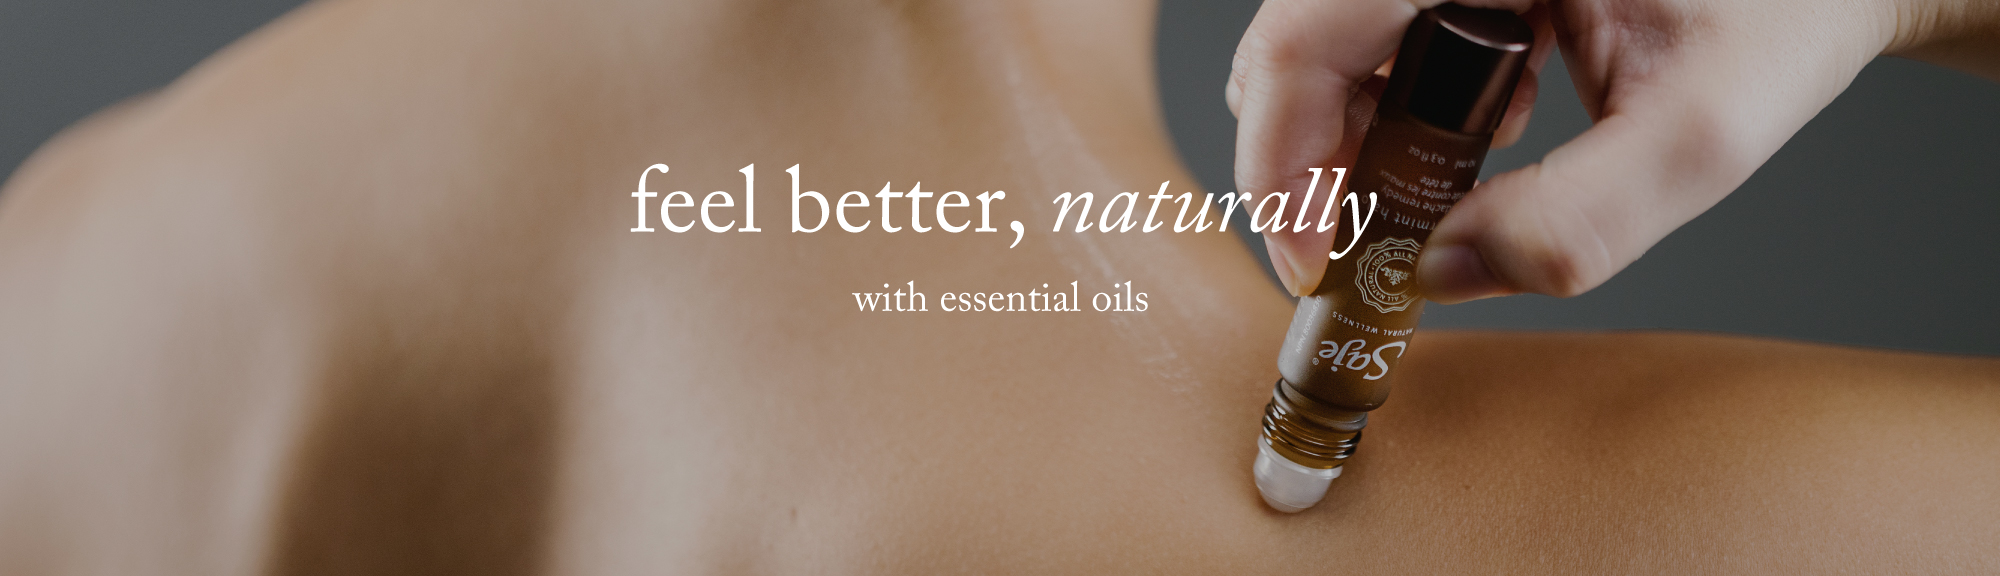 Feel better with essential oils